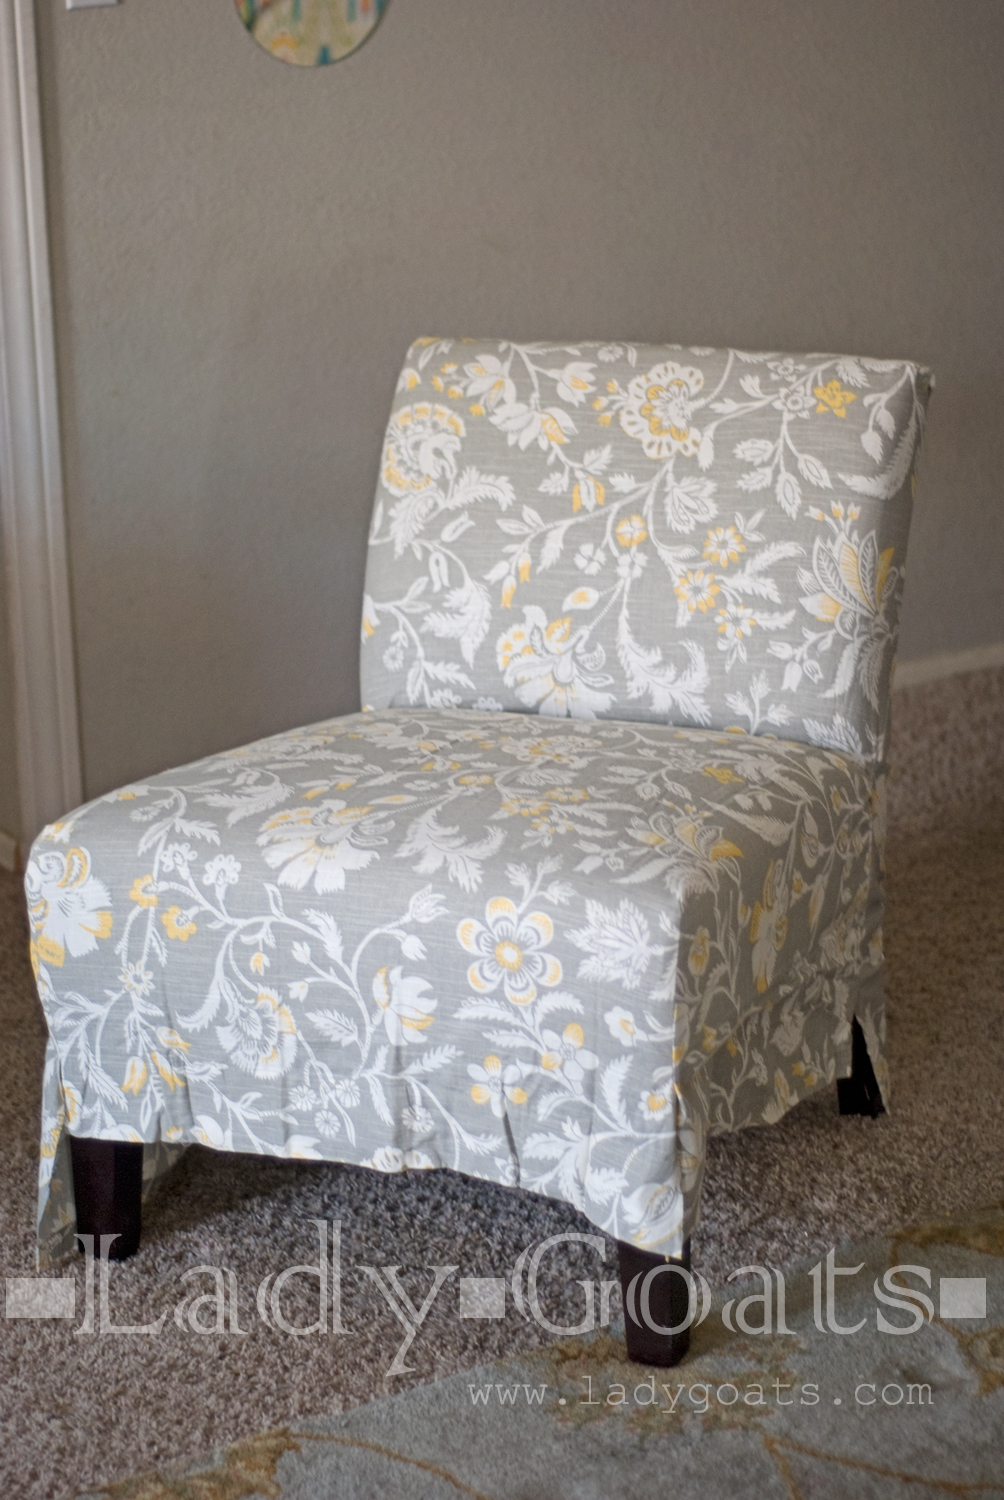 slipcover for armless chair teak adirondack kit lady goats diy slipper without a template